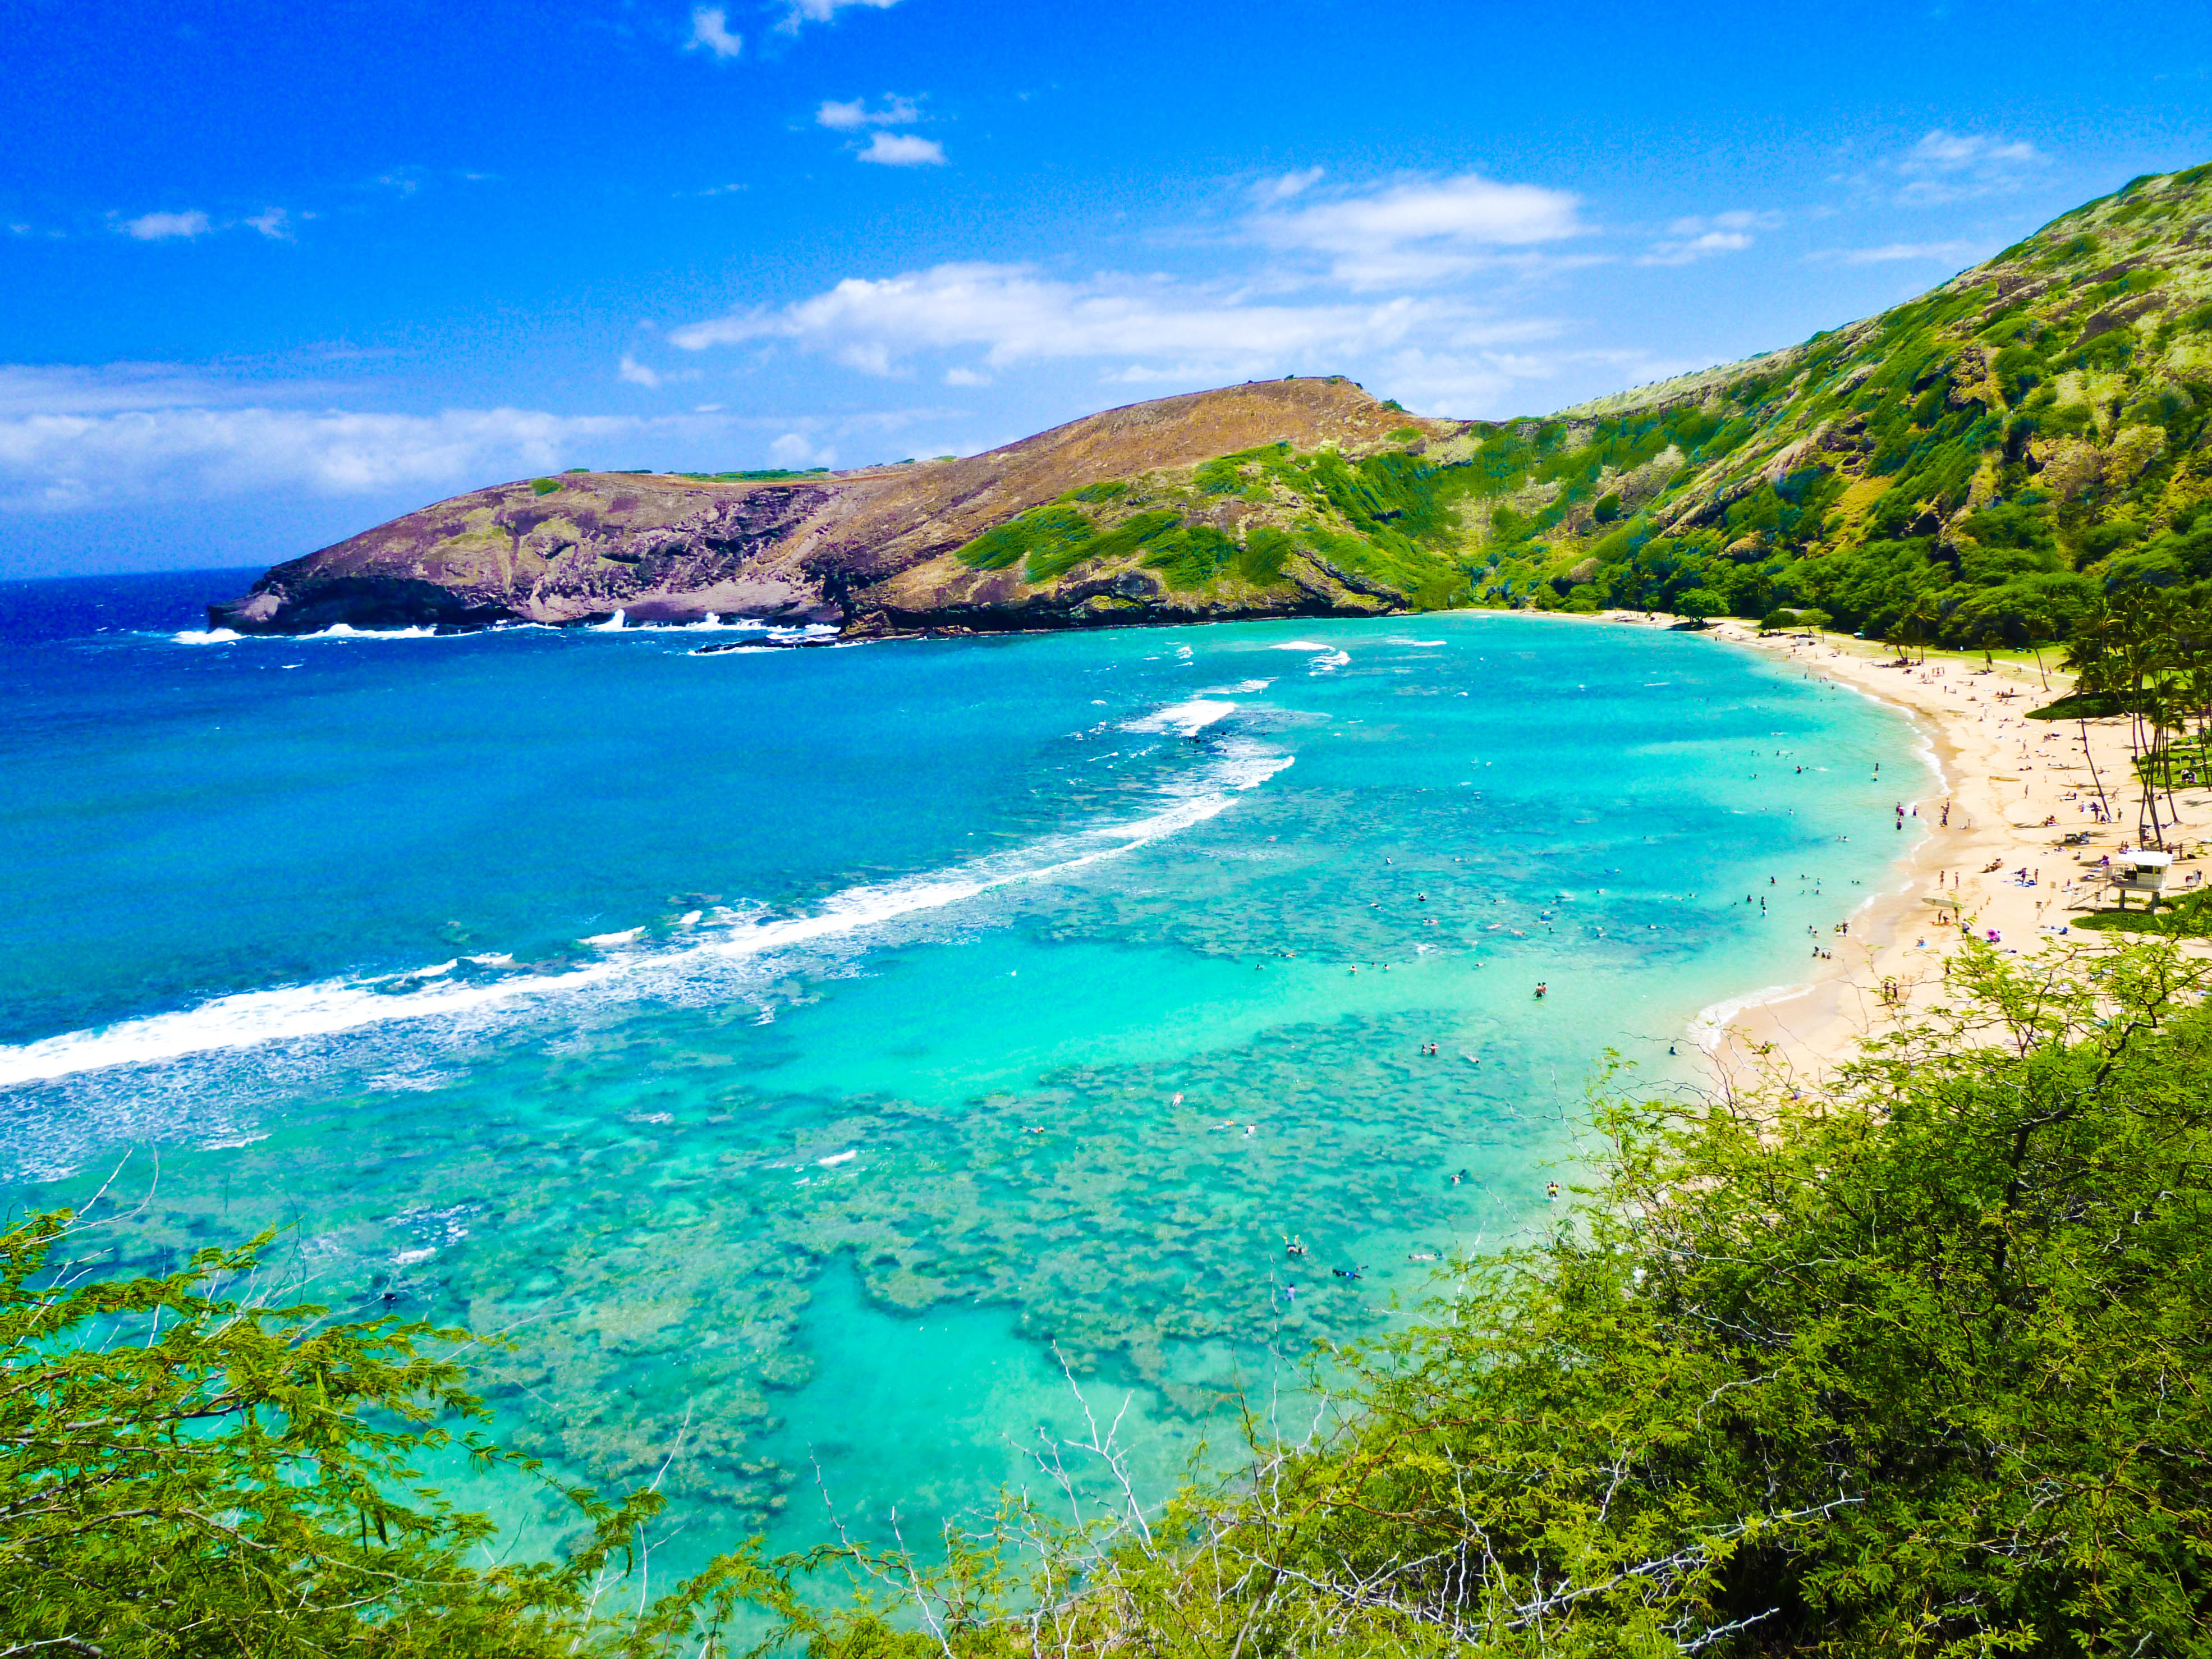 hawaii - photo #20